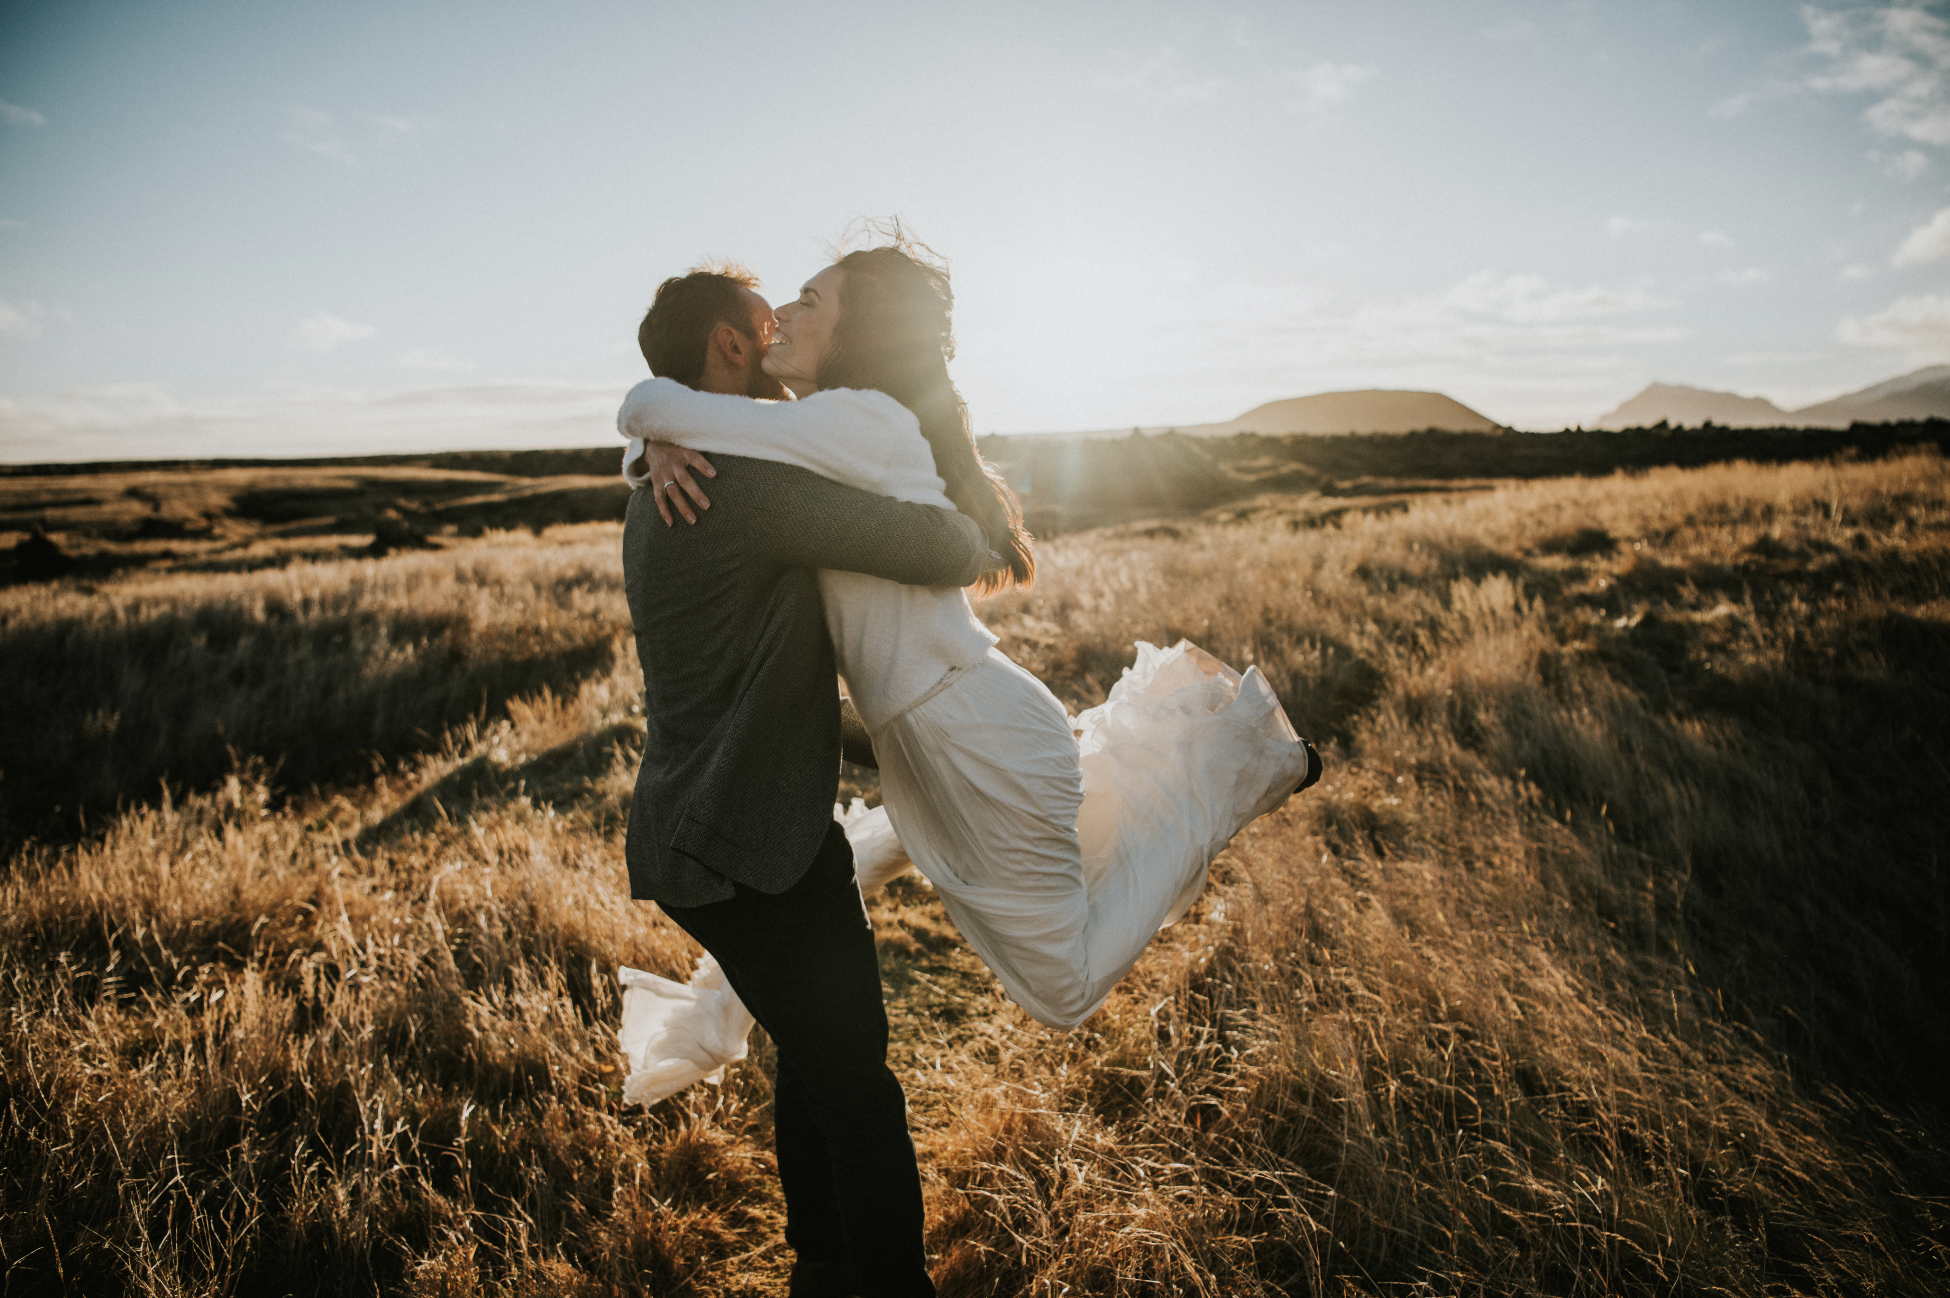 Natalie-Vitaly-Iceland-Elopement-Photographer-Videographer-42